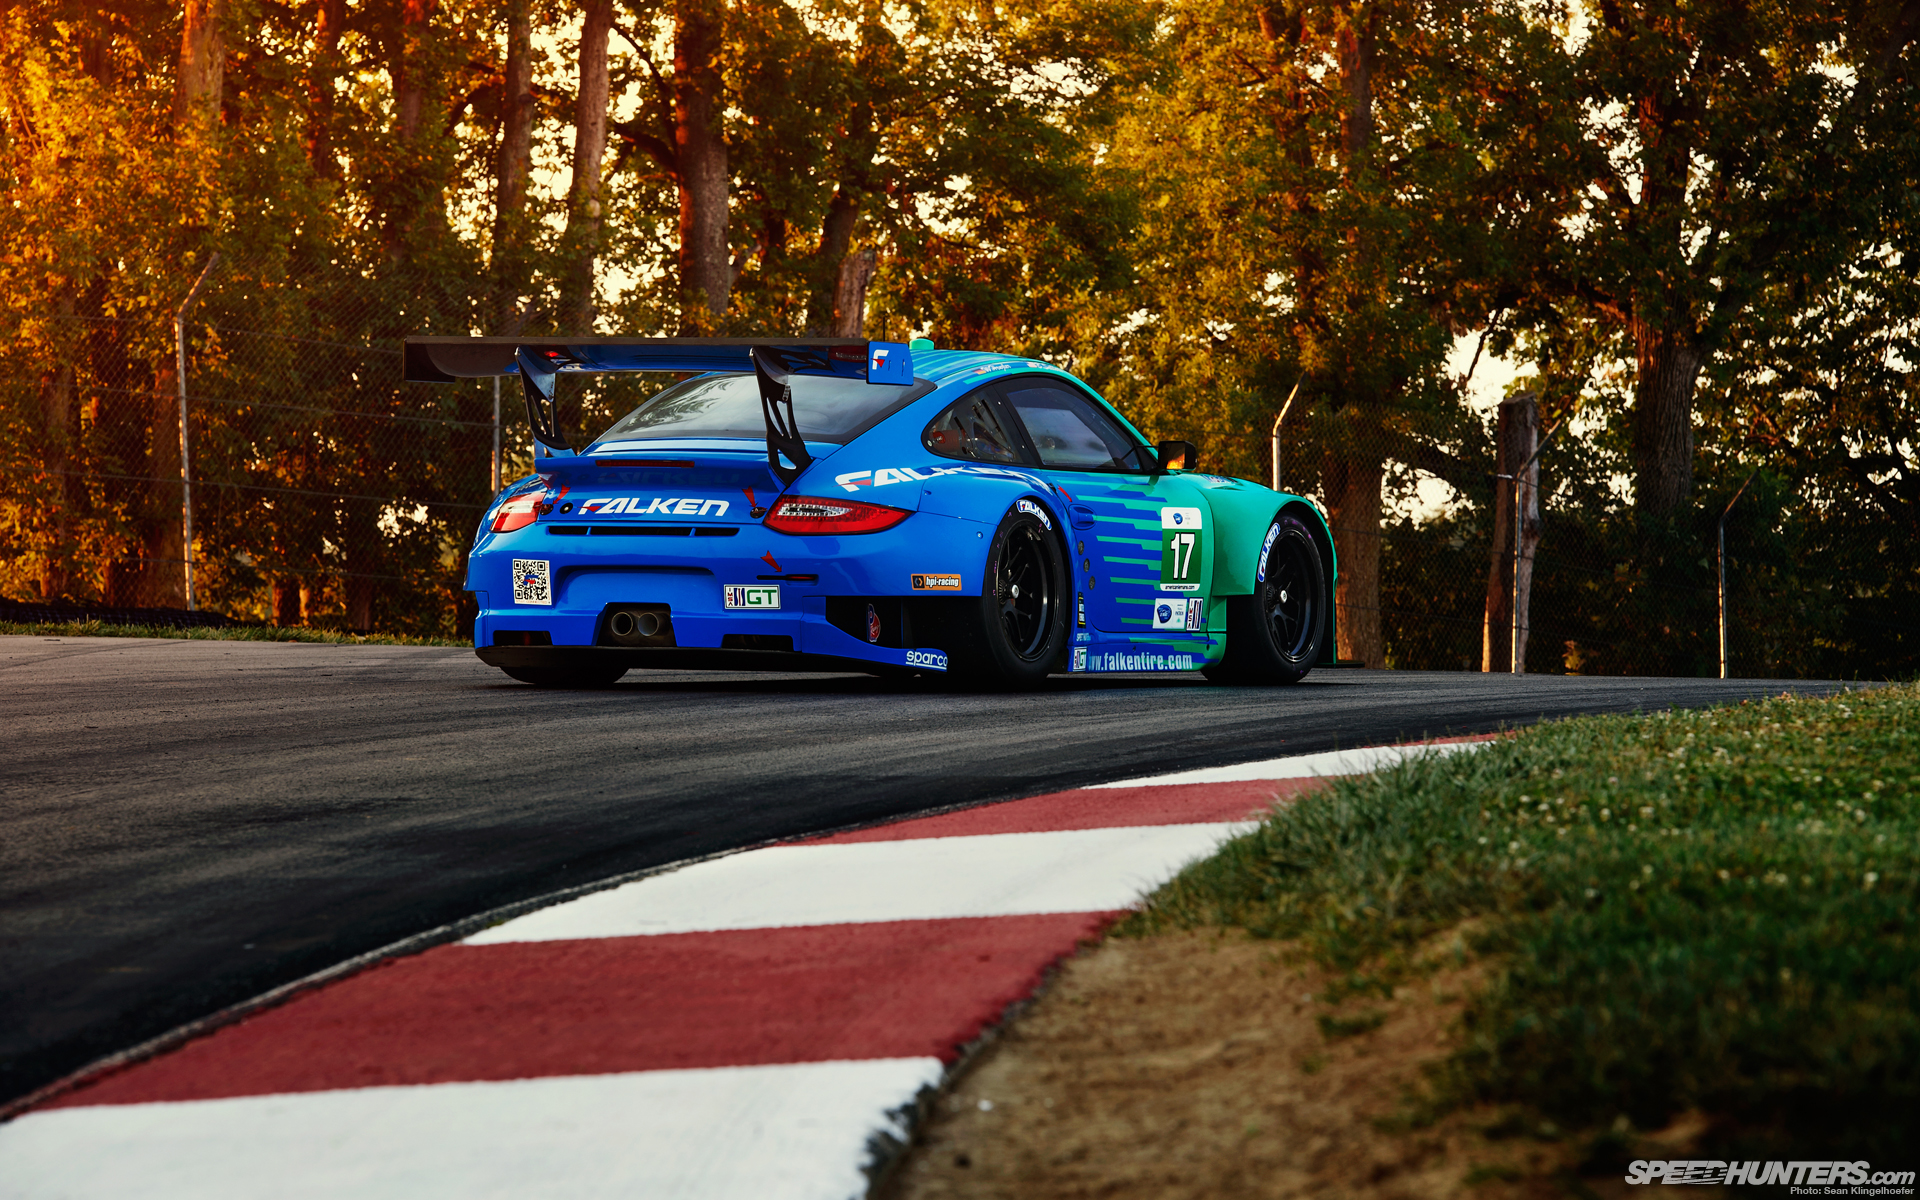 The Ultimate Contemporary 911 Falken S Gt3 Rsr Speedhunters